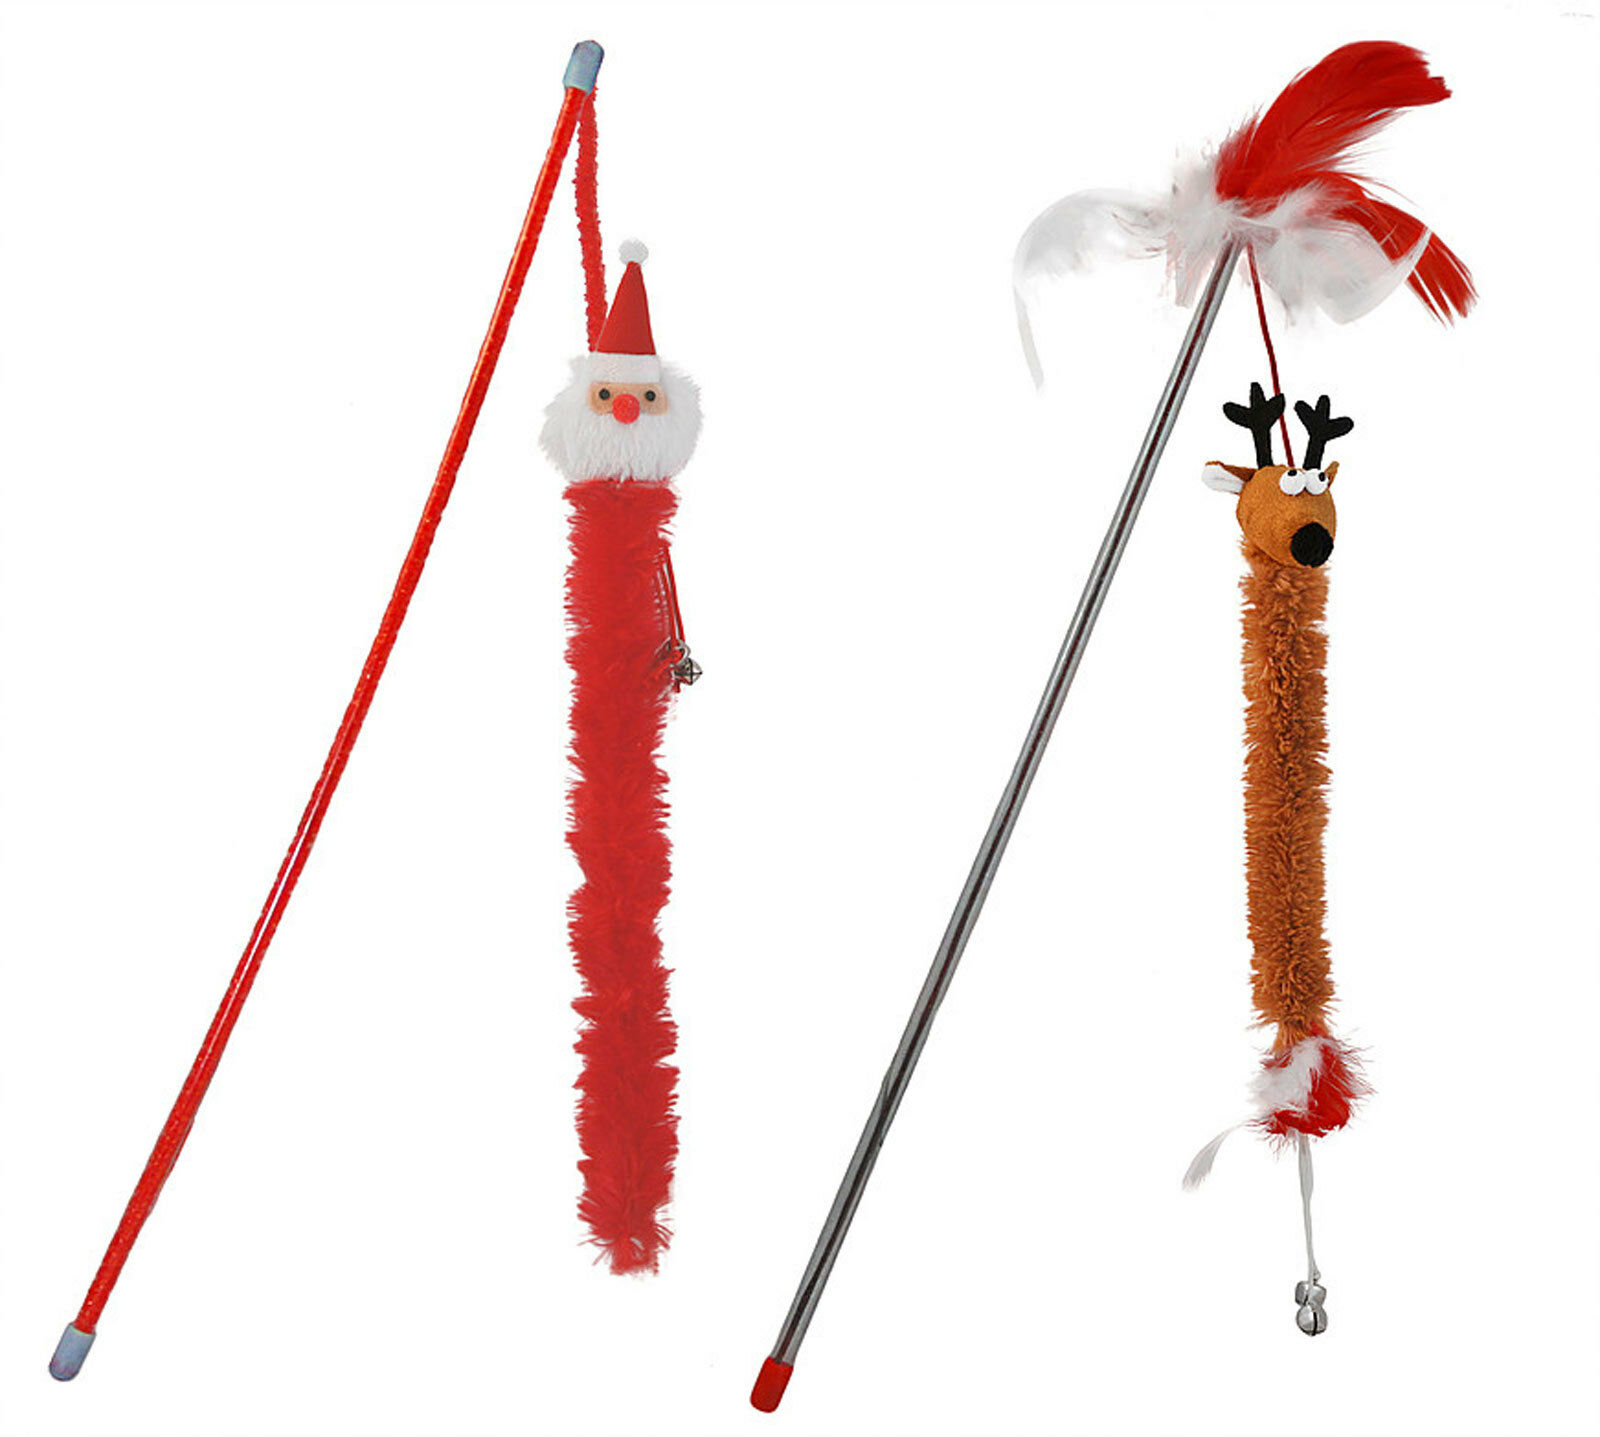 Fluffy Festive Fishing Poles Cat Dangler Toys Cat Toy For Cats and Kittens Xmas